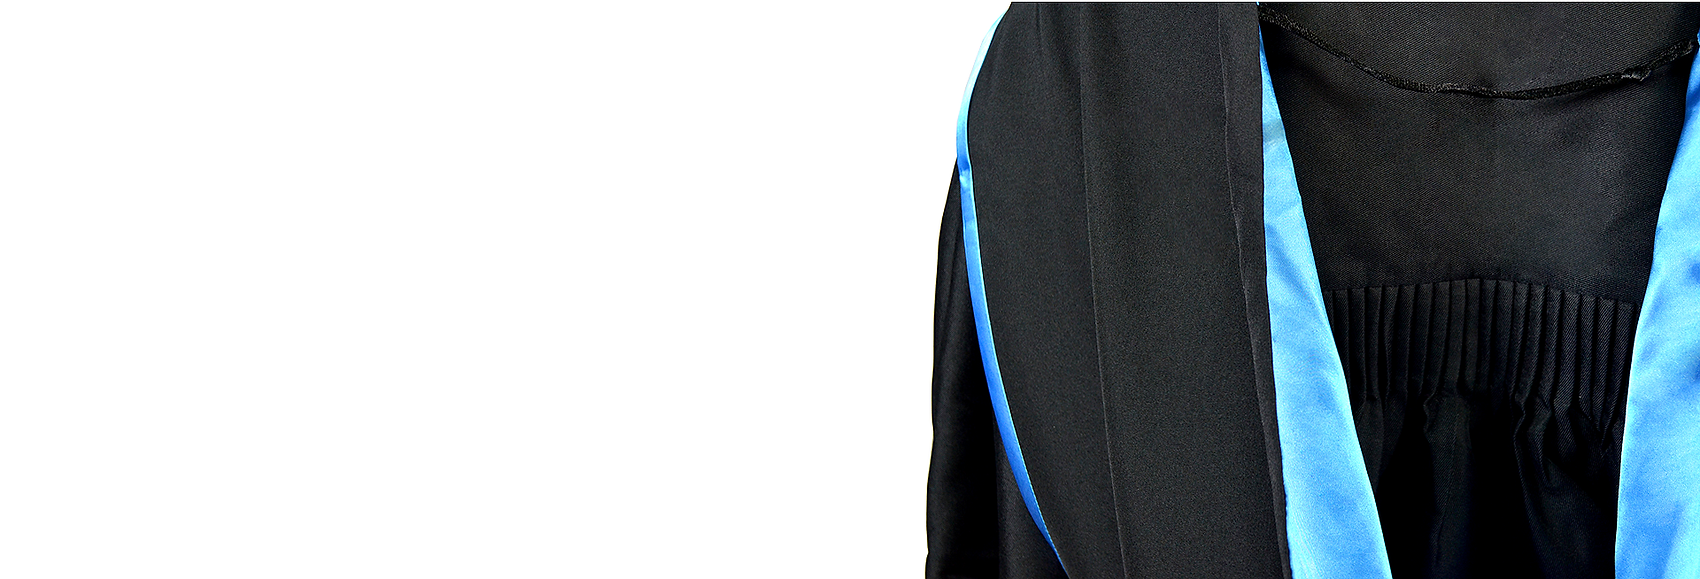 Graduation gowns and academic dresses for The Chinese University of Hong Kong (CUHK), City University of Hong Kong (CityU), The Hong Kong Polytechnic University (PolyU), Lingnan University (LNU) and many other institutions' – we design and sell high quality graduation gown and academic dress in Hong Kong.   城大畢業袍、理大畢業袍、 中大畢業袍、 嶺大畢業袍 | 城市大學畢業袍、 理工大學畢業袍、中文大學畢業袍、 嶺南大學畢業袍、學士畢業袍、 碩士畢業袍、 博士畢業袍均有銷售